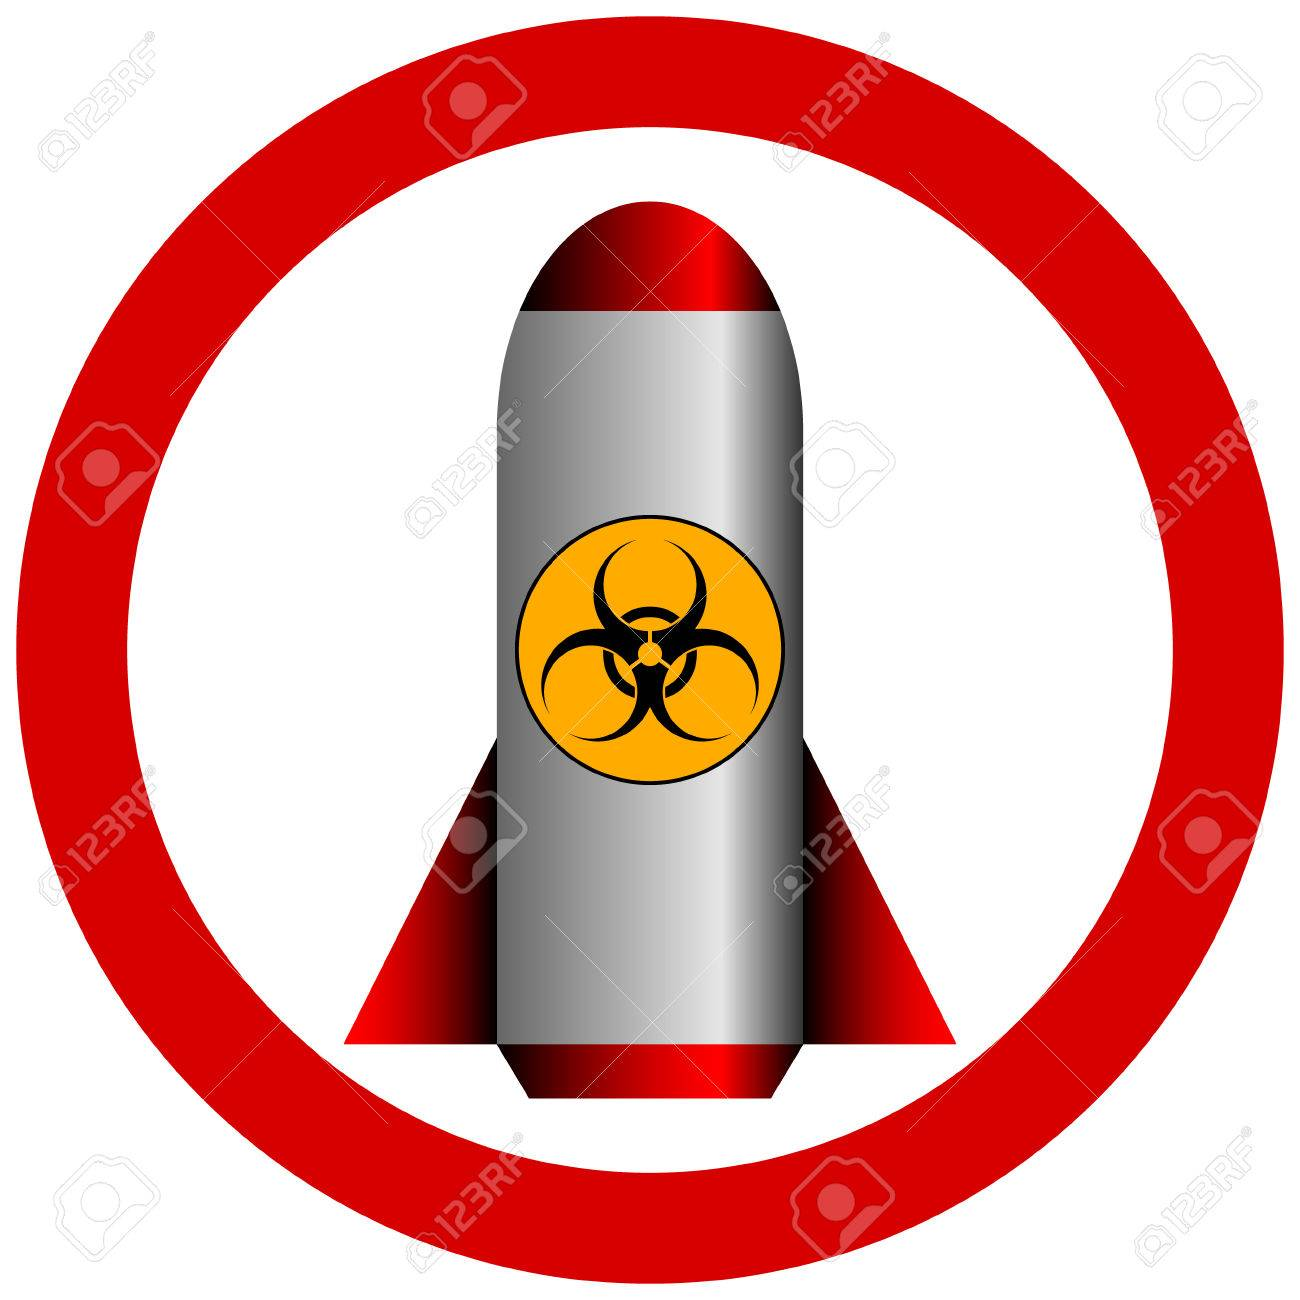 No biohazard rocket on white background - vector illustration. Stock Vector - 24601756